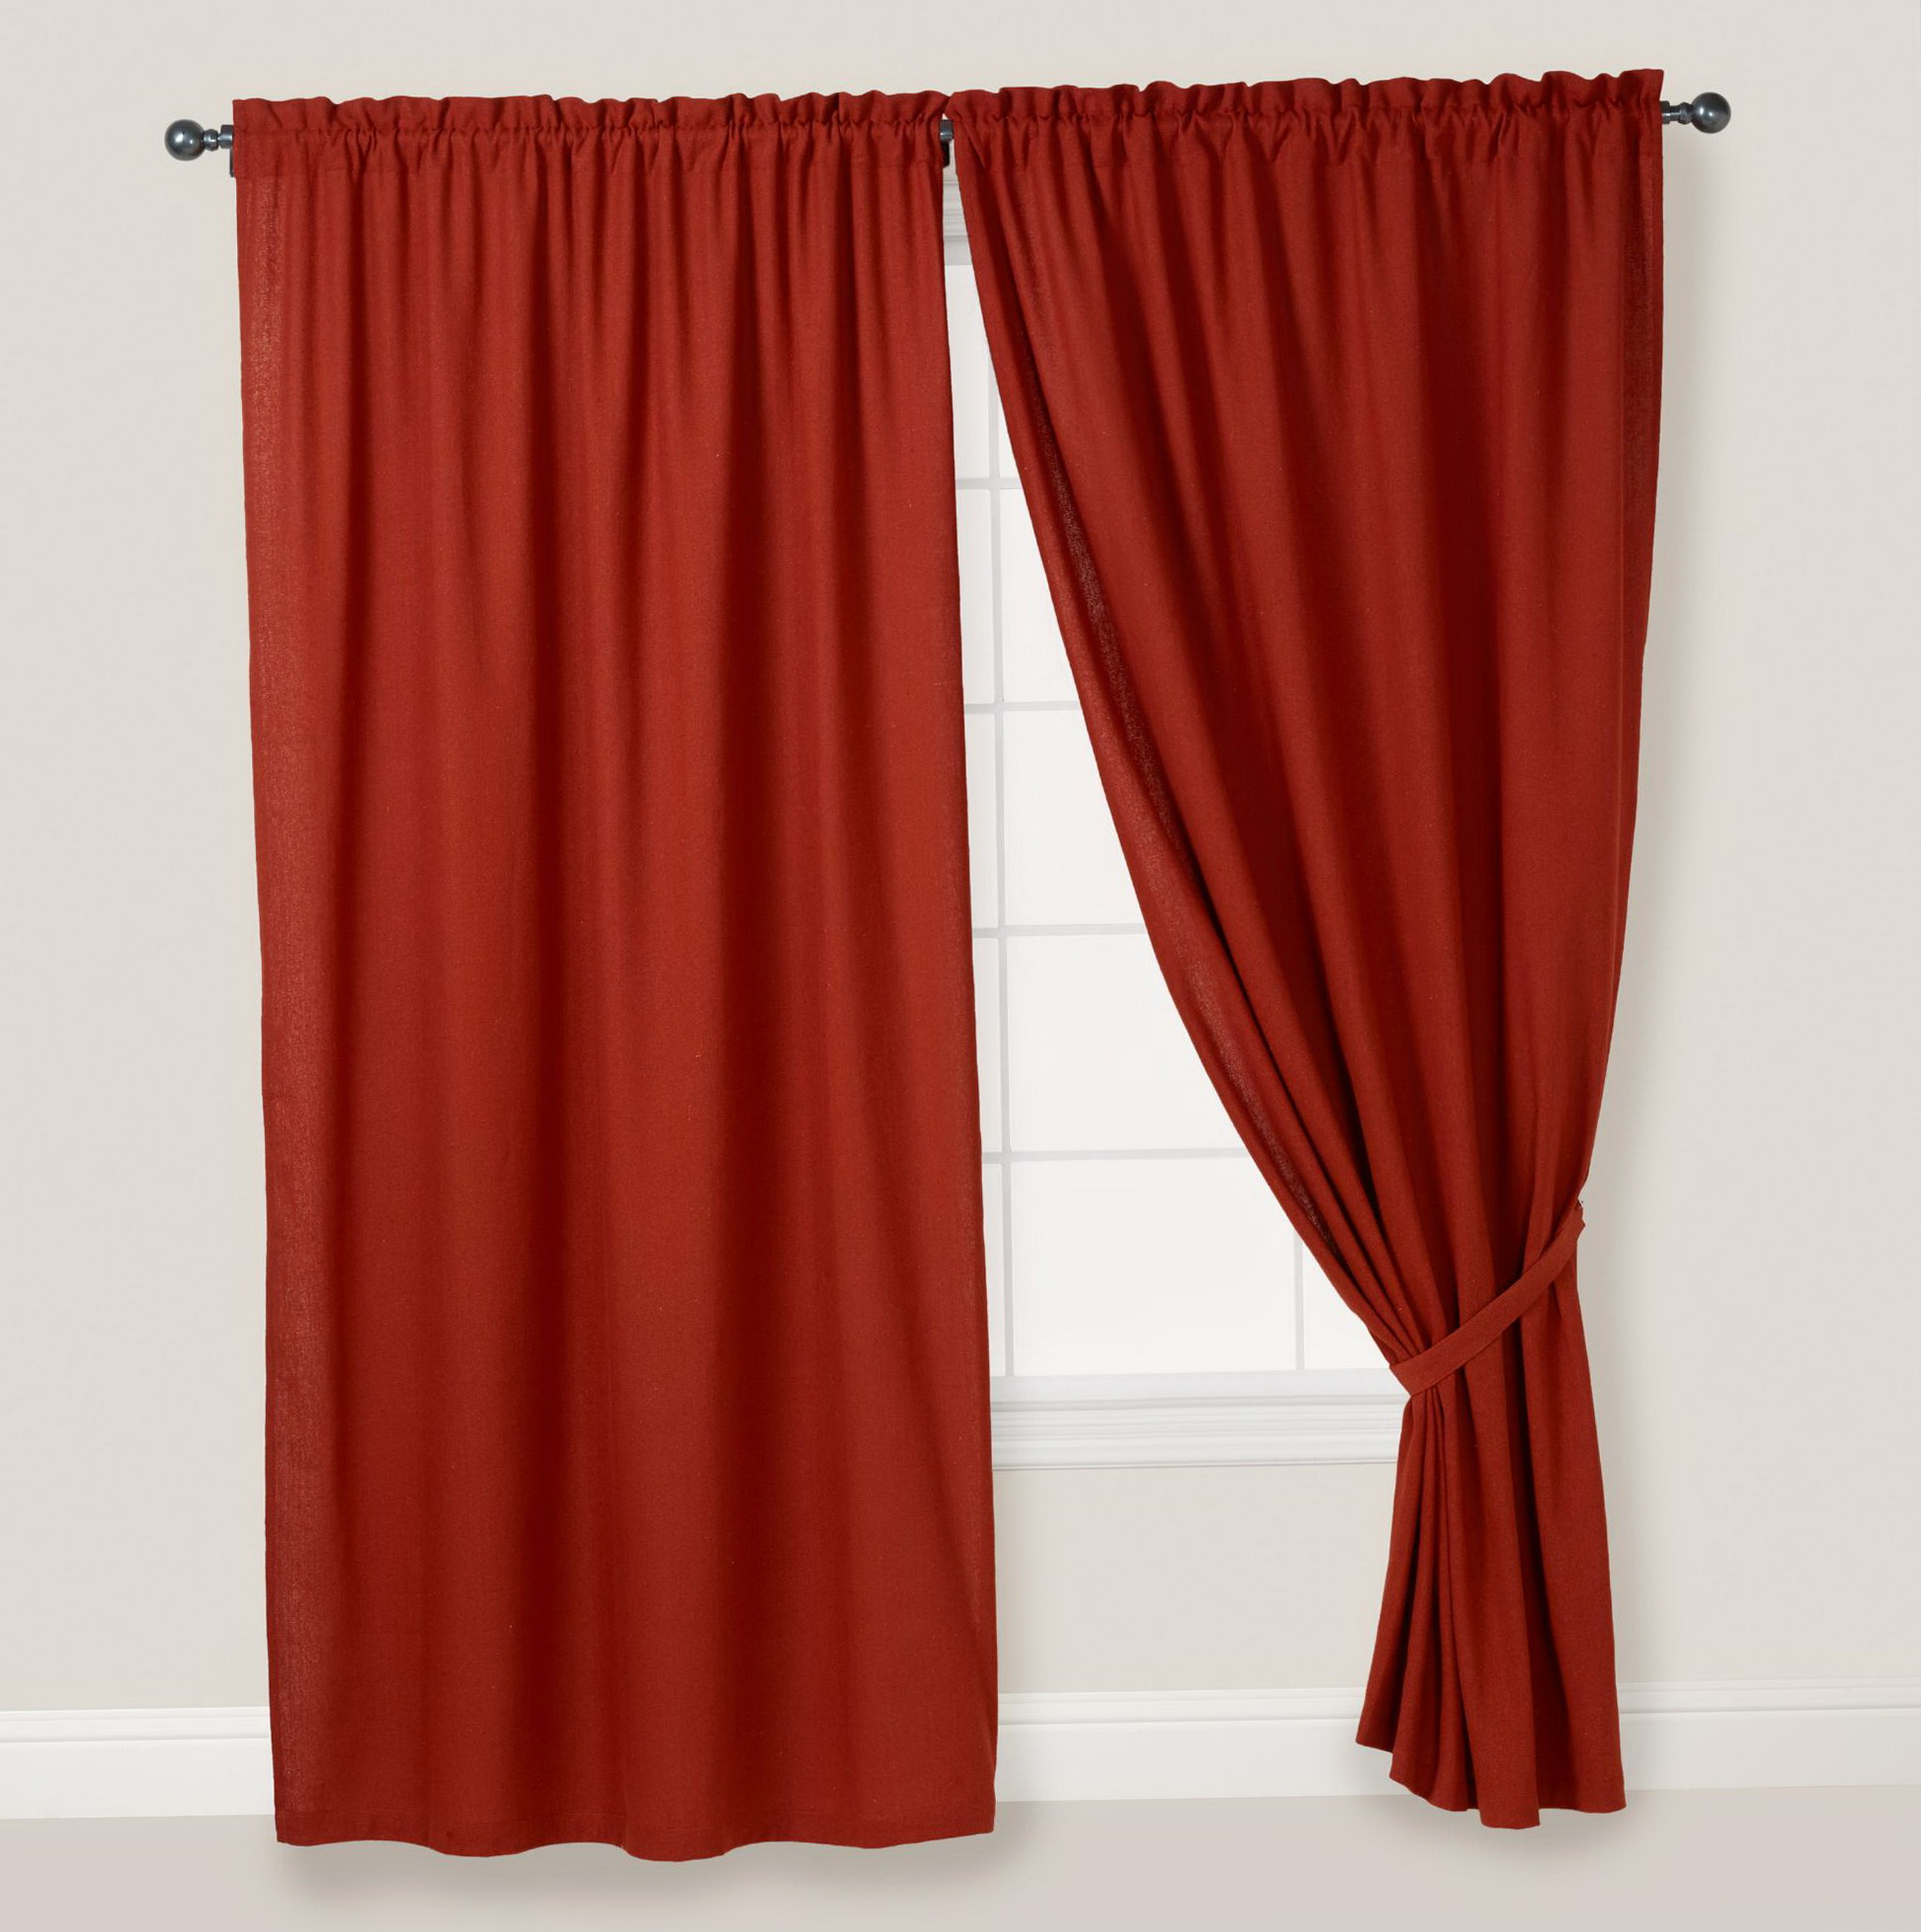 sale japanese merge curtain plaid hooks elegant metal p colorful online flame curtains elegan retardant